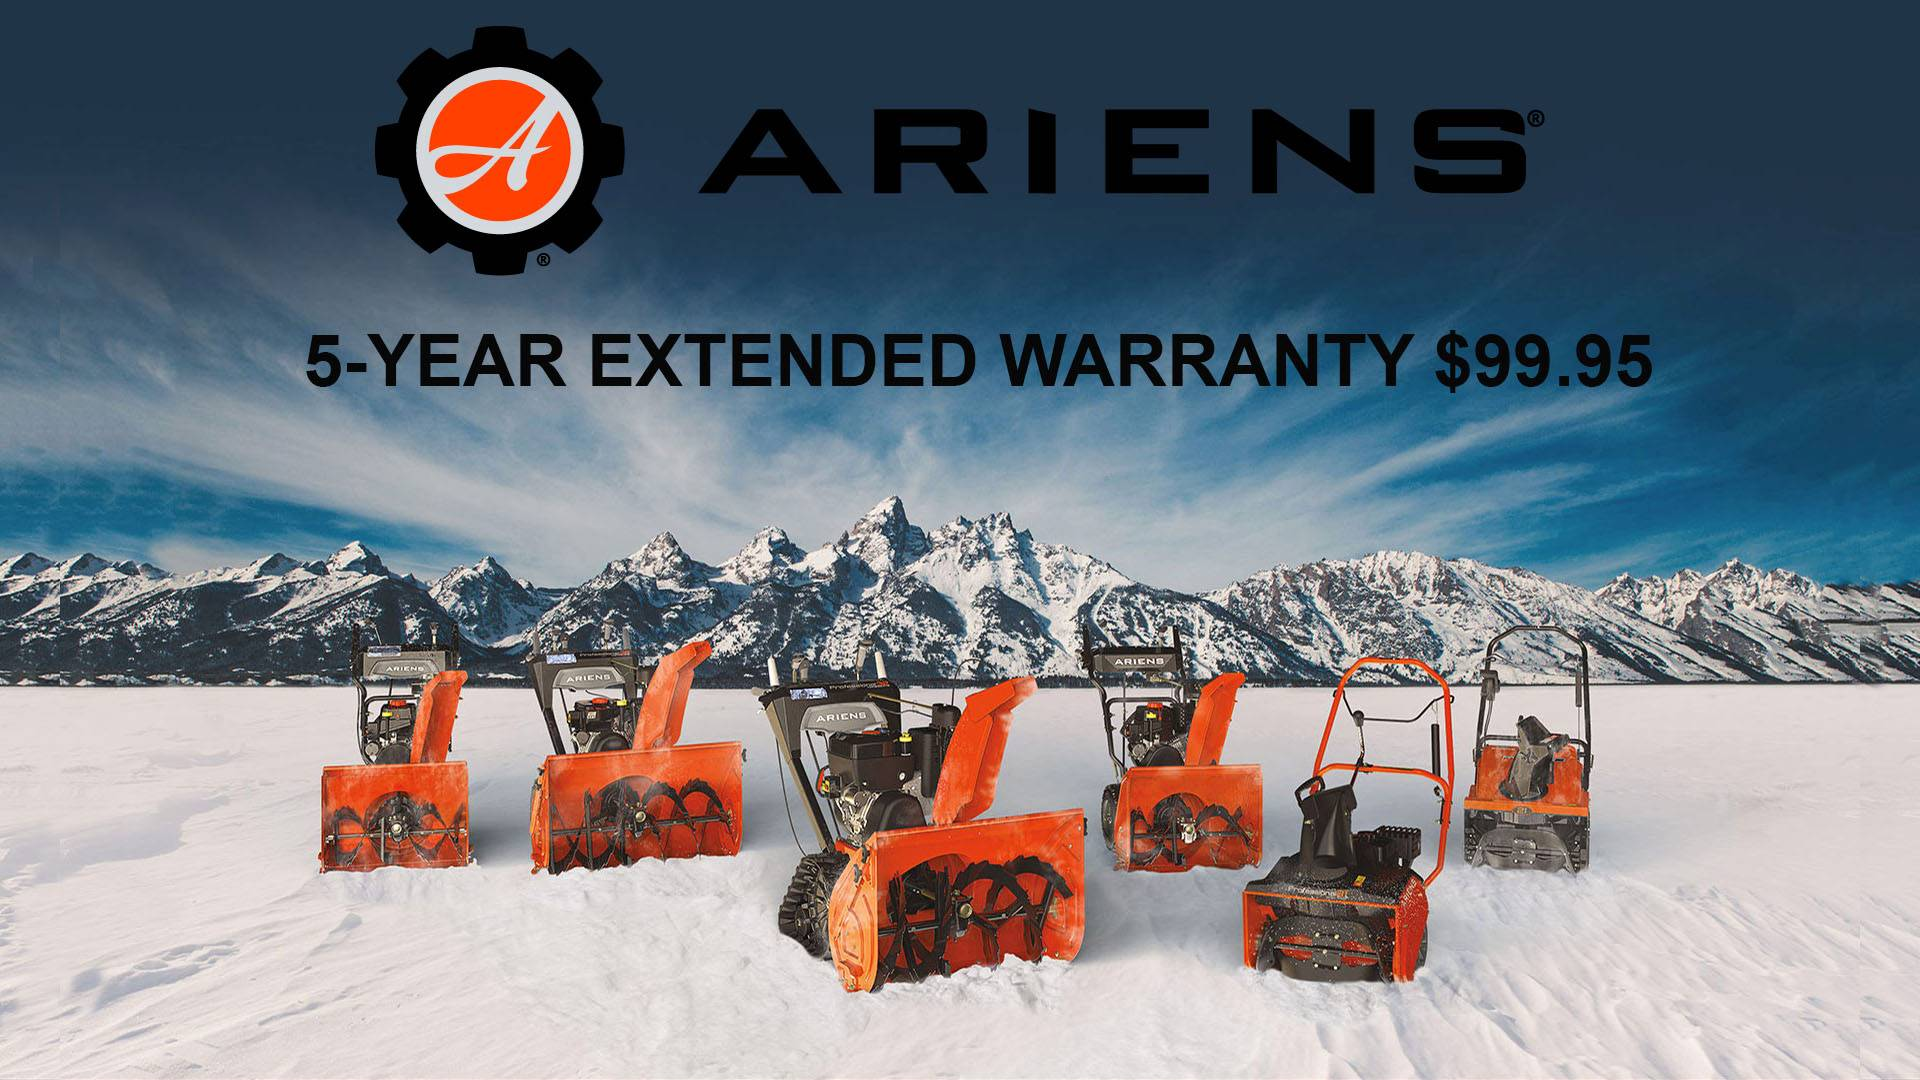 Ariens USA Ariens - 5-Year Extended Warranty $99.95